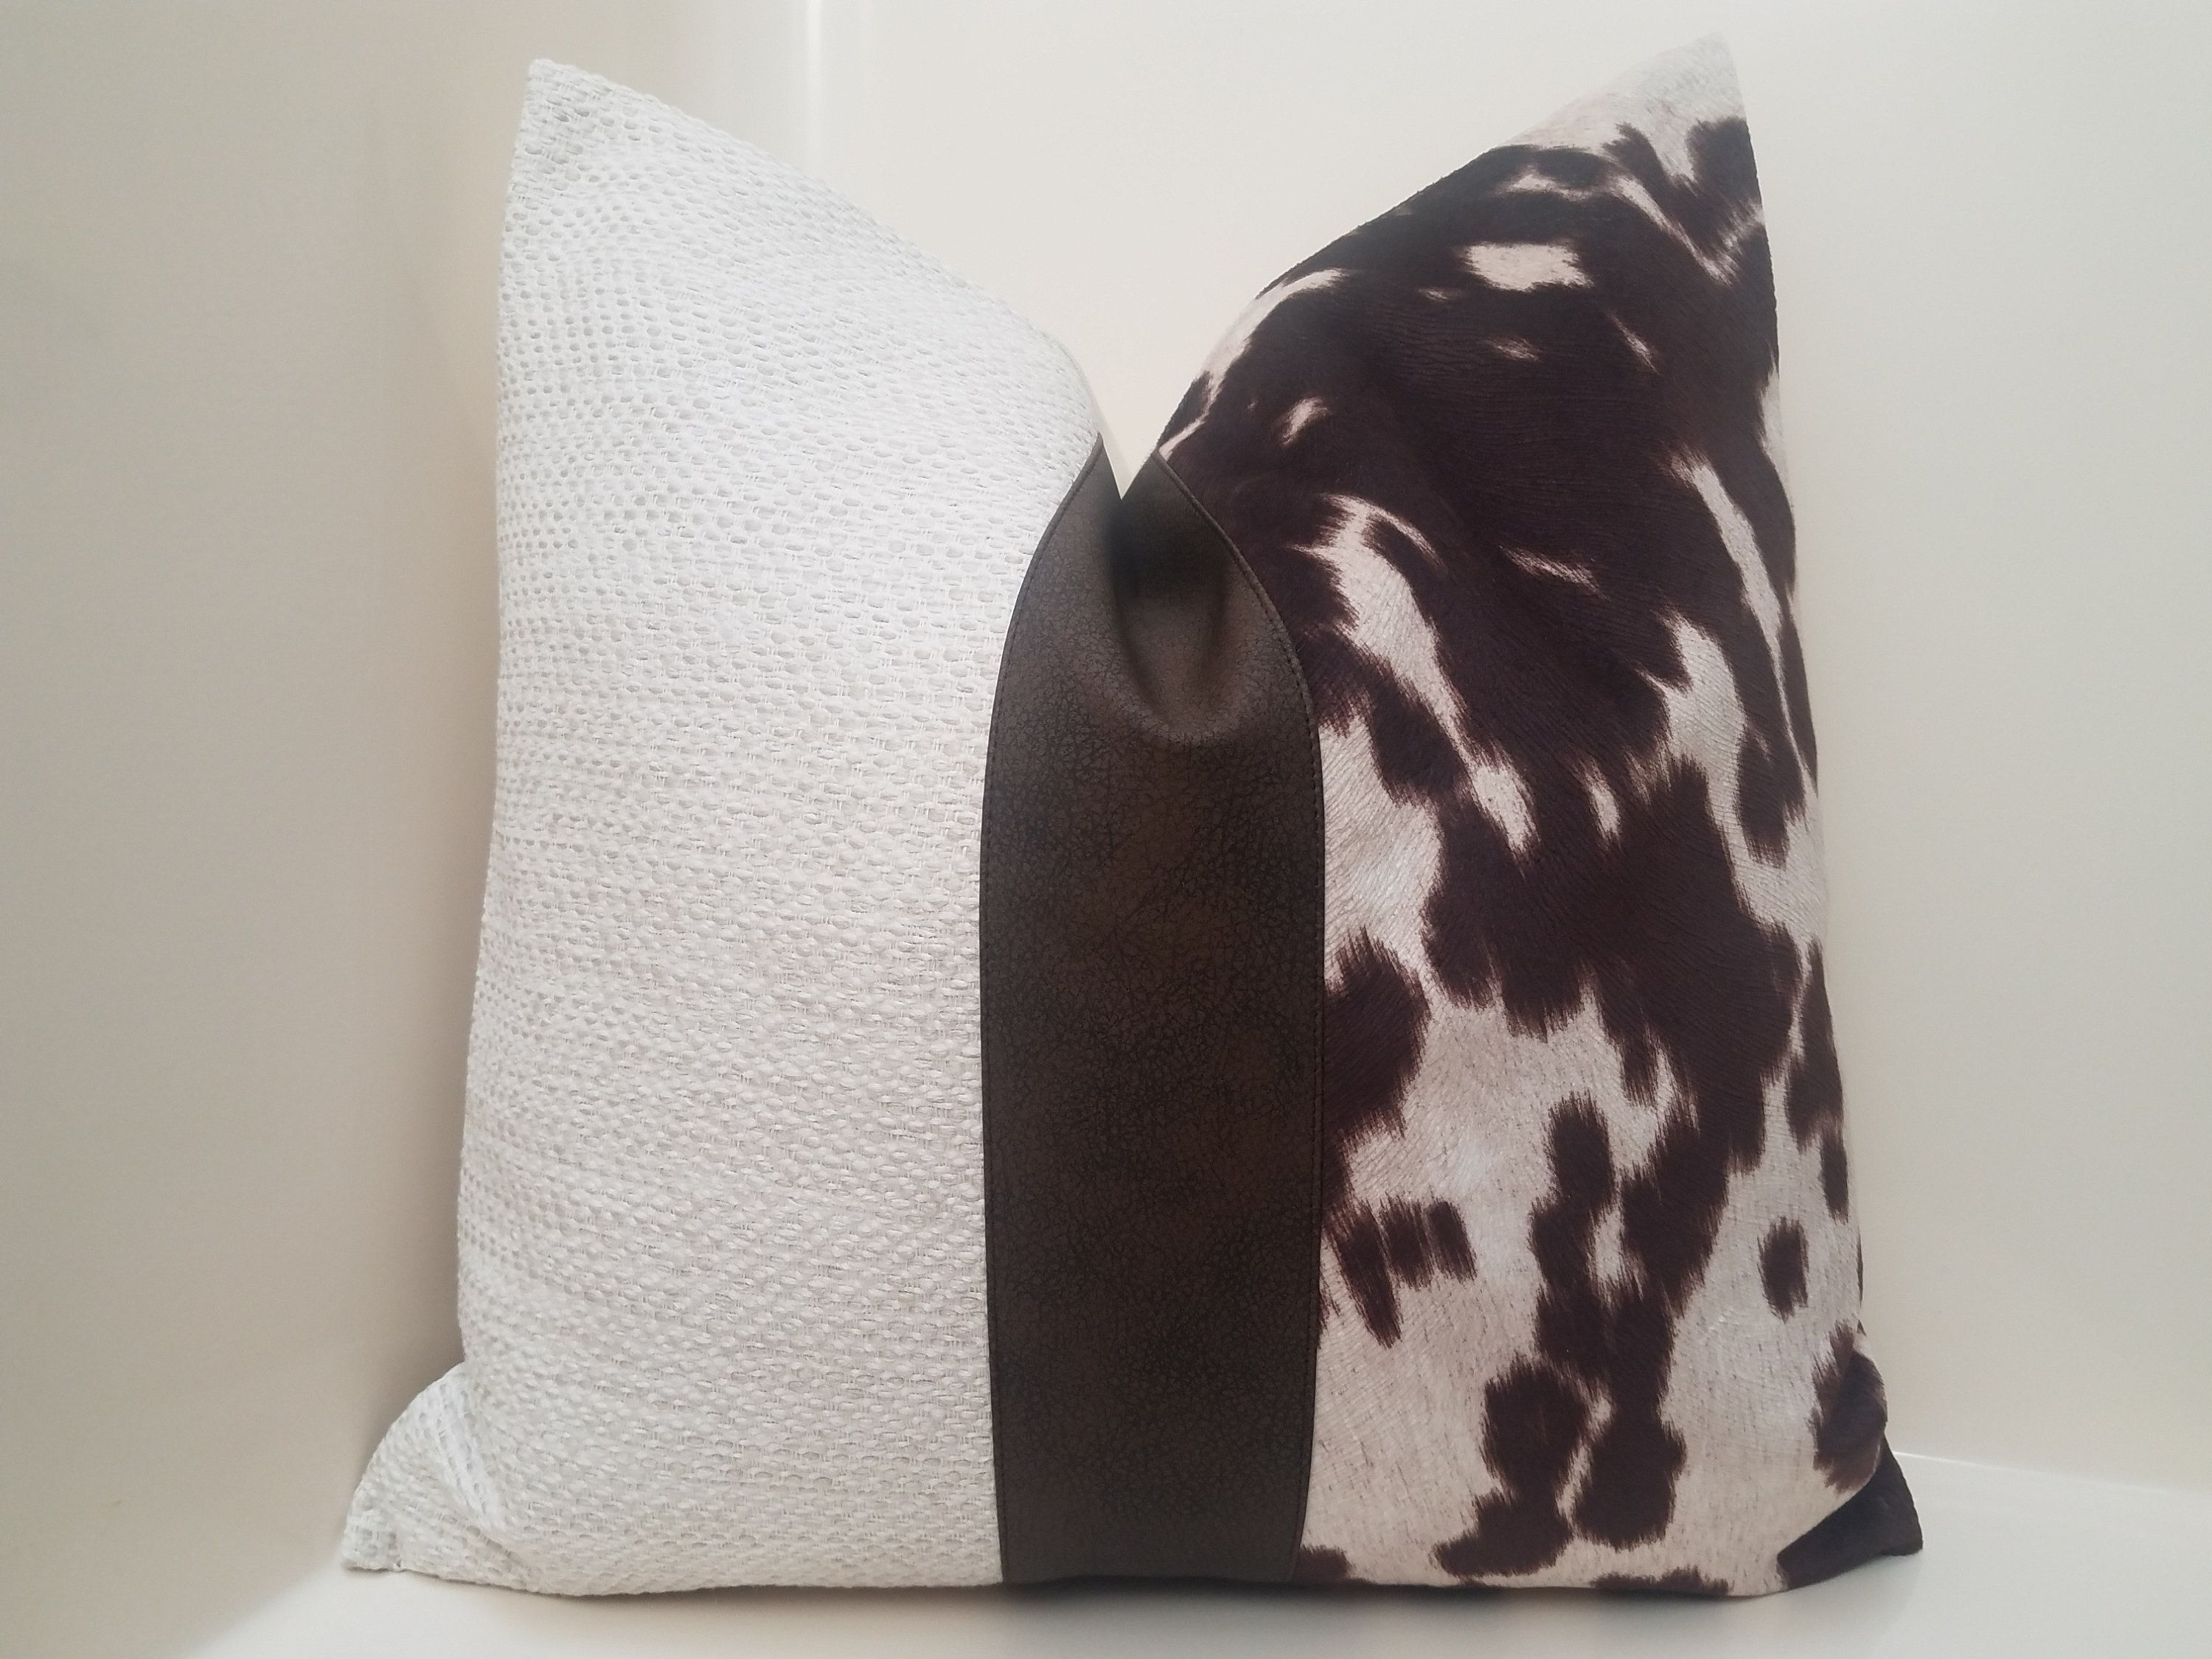 Cow Pillow Cover Faux Leather Pillow Tribal Throw Pillow Etsy In 2020 Tribal Throw Pillows Leather Pillow Throw Pillows